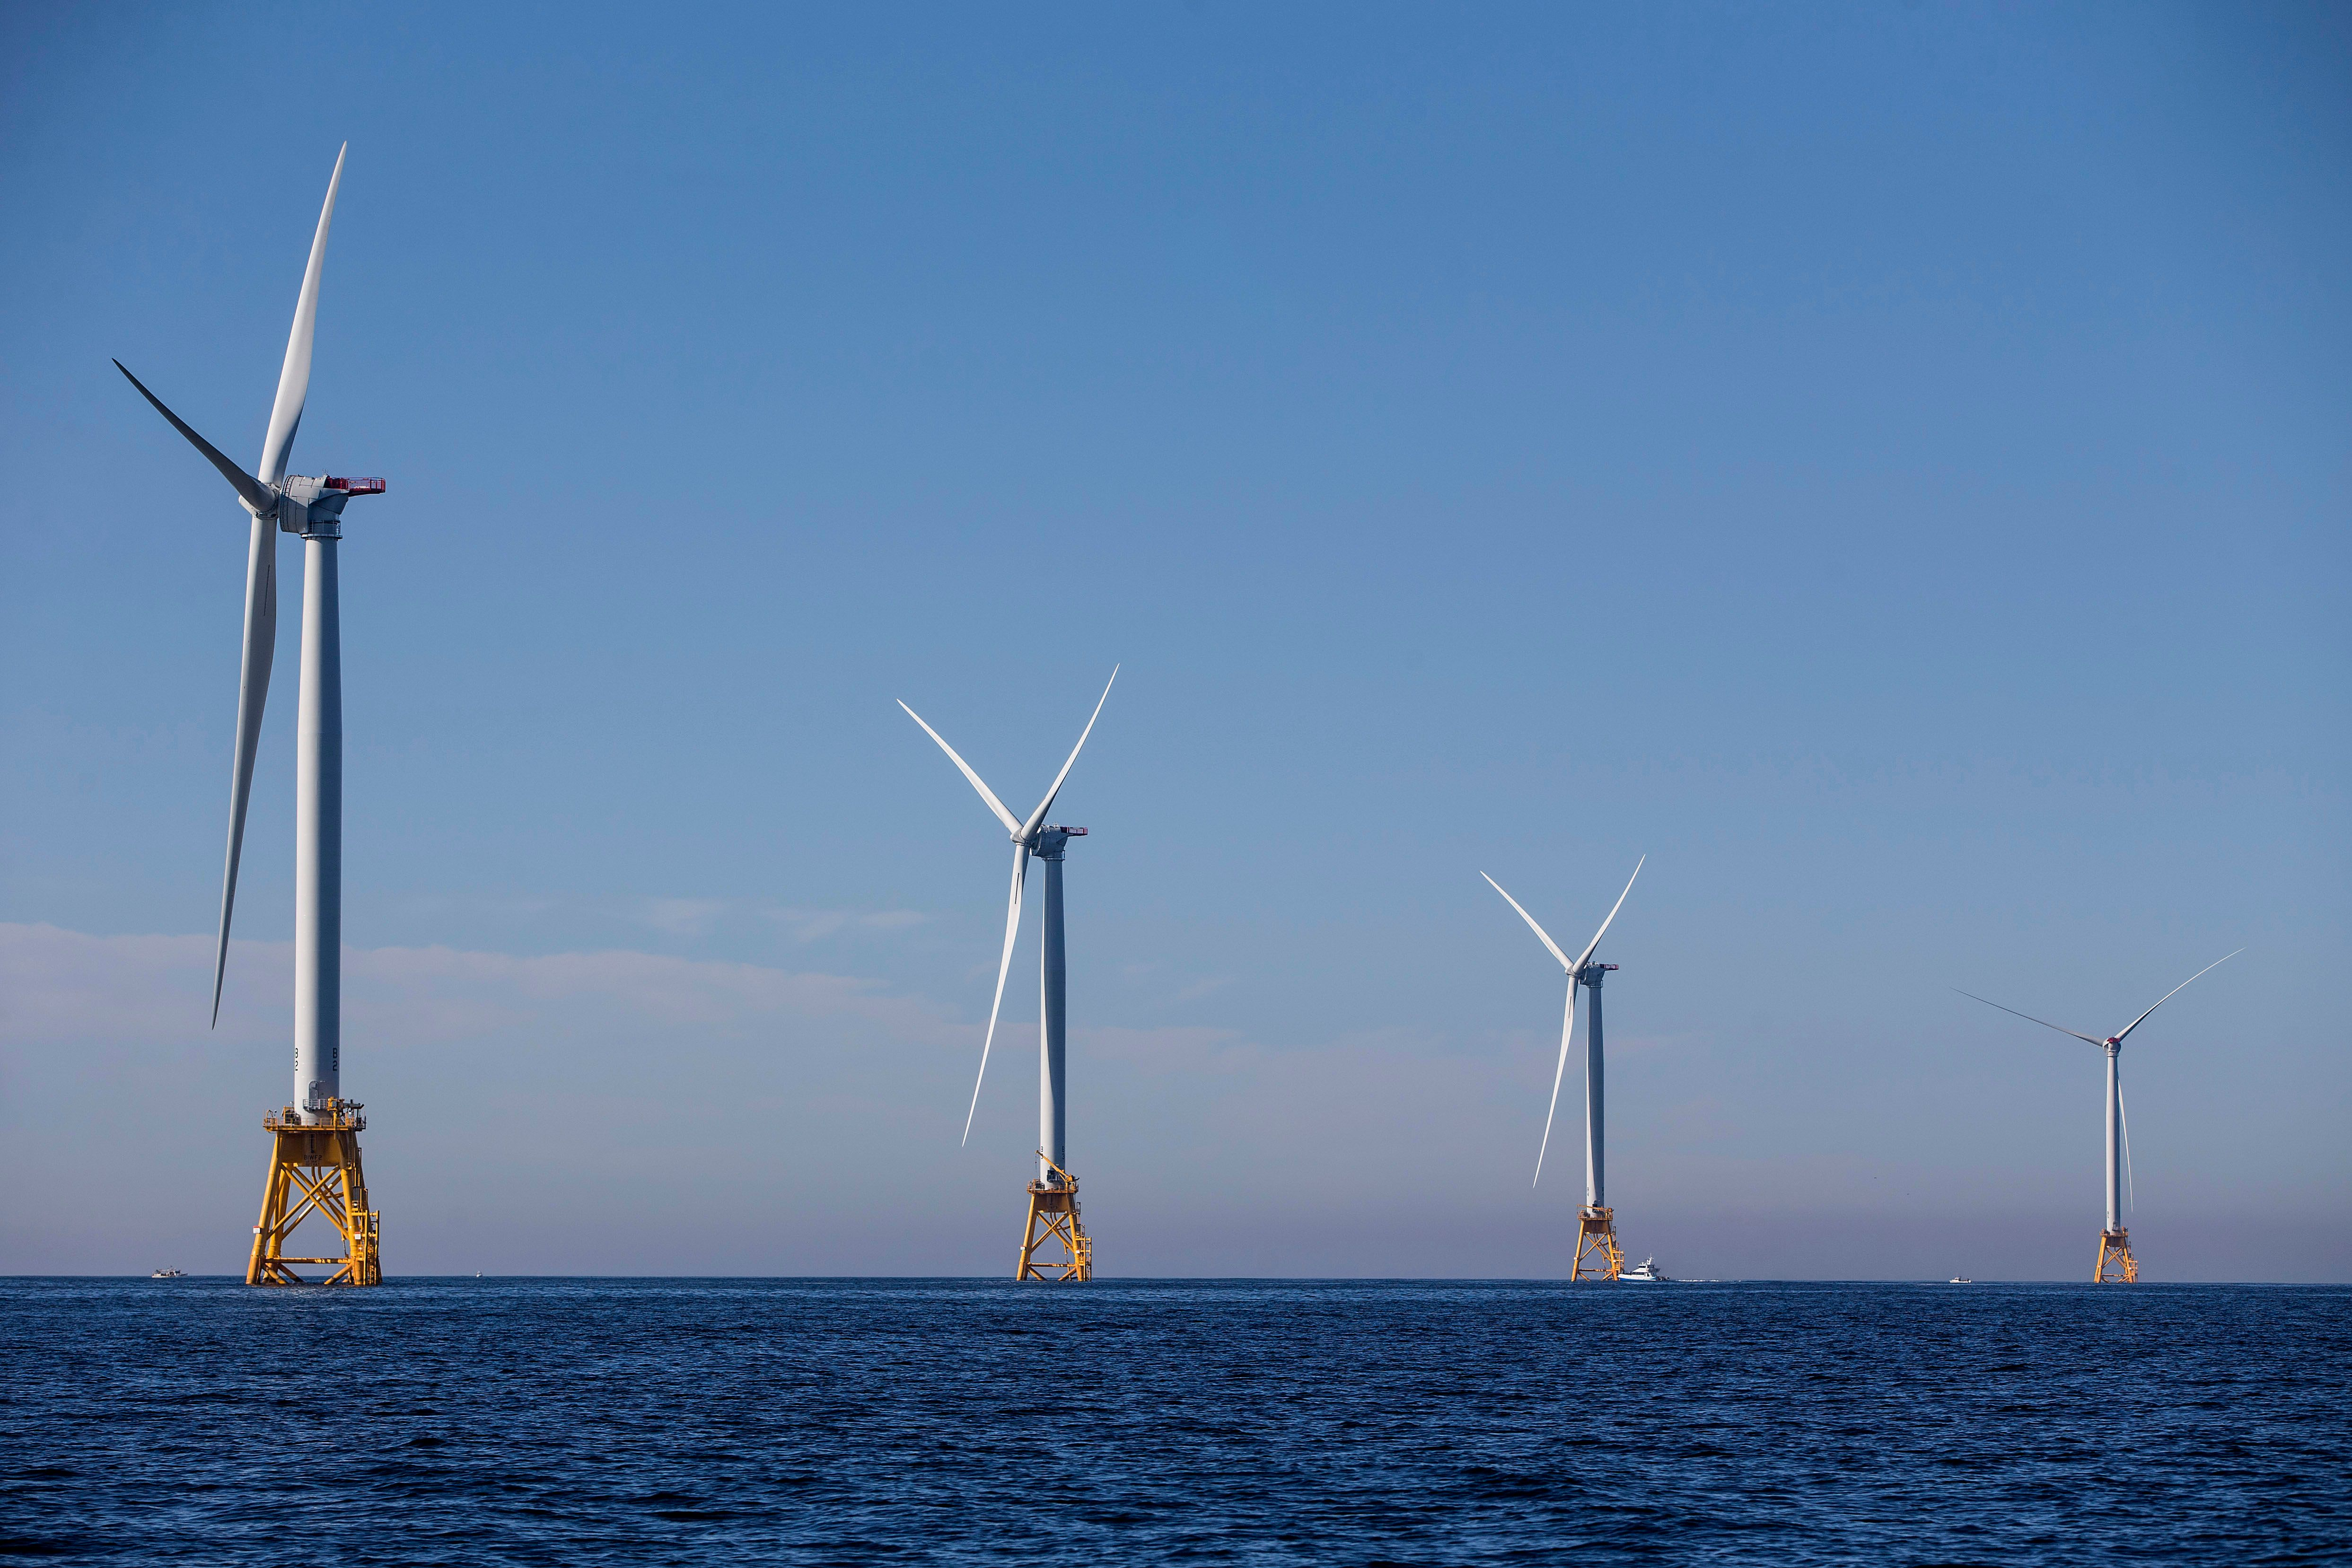 The five new 6 megawatt wind turbines off the coast of Block Island, Rhode Island, are expected to produce more energy than t